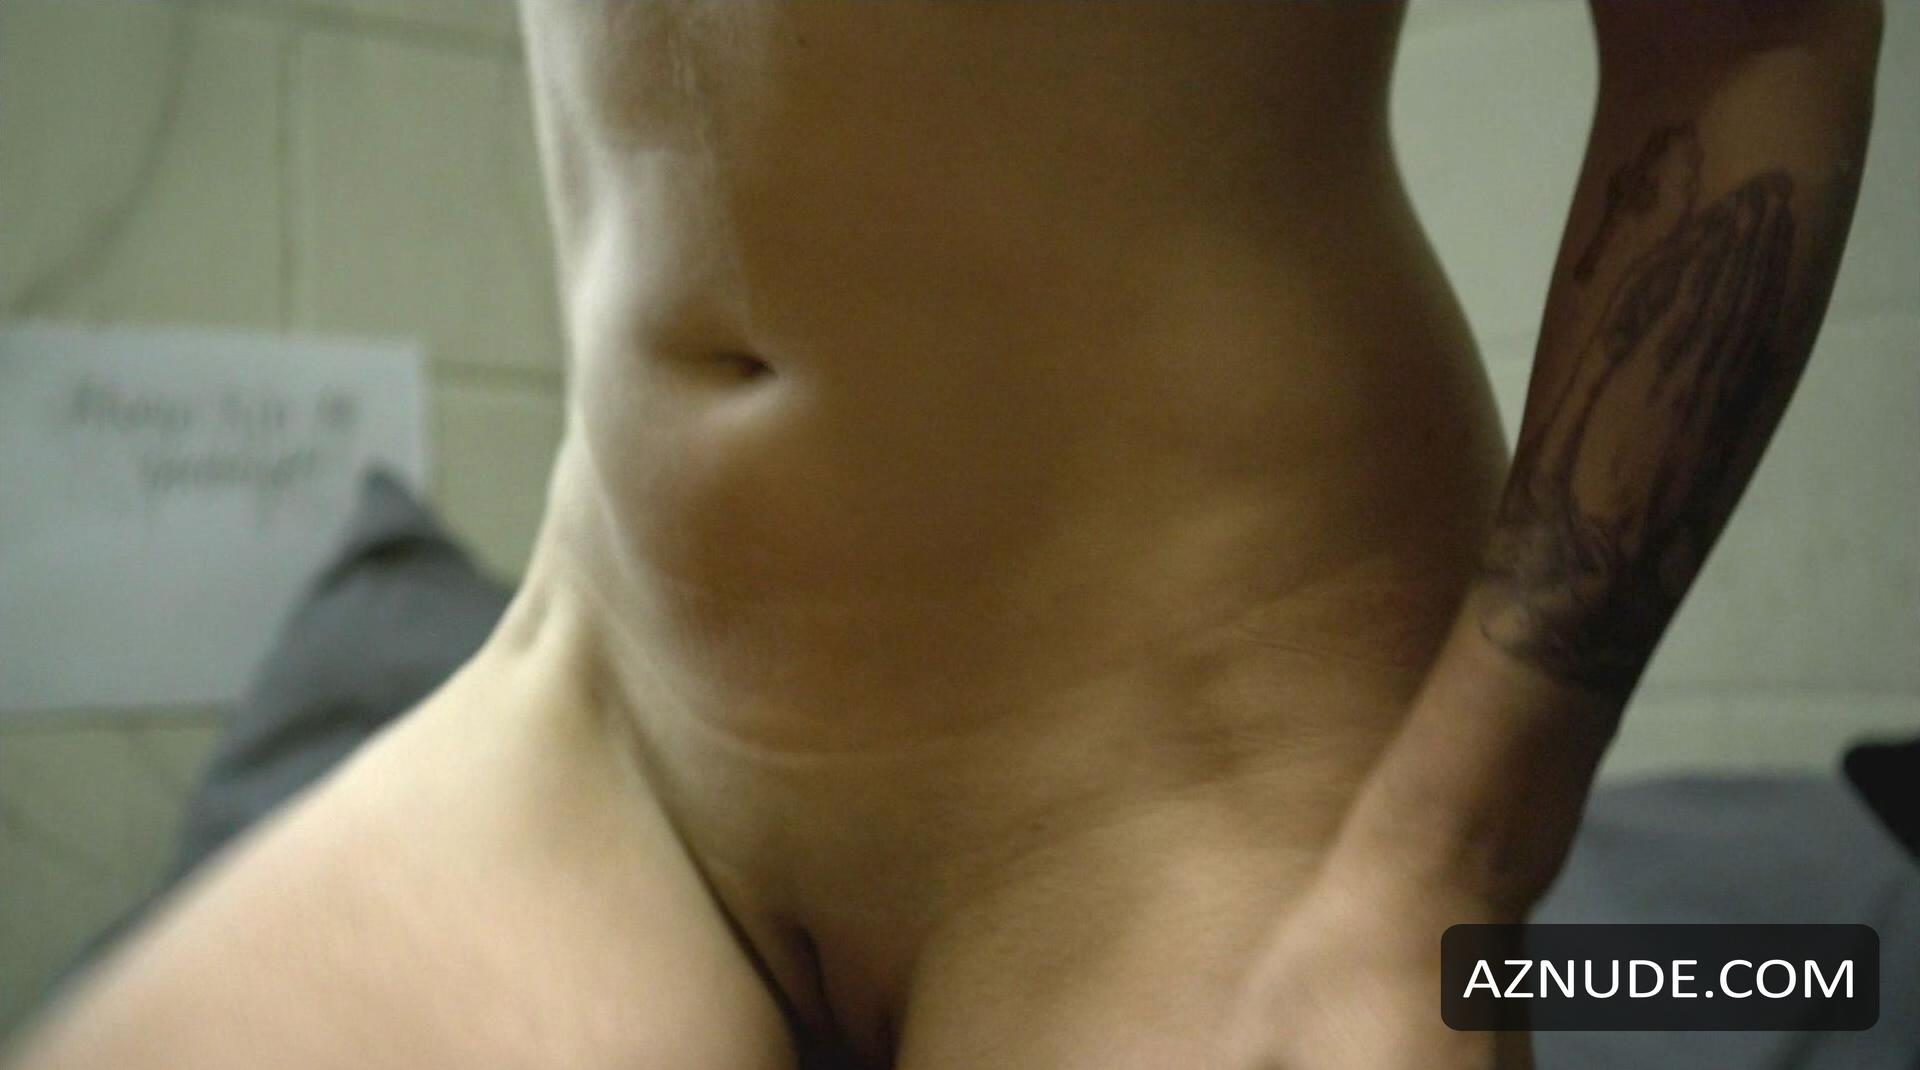 nude photos of african males with erections